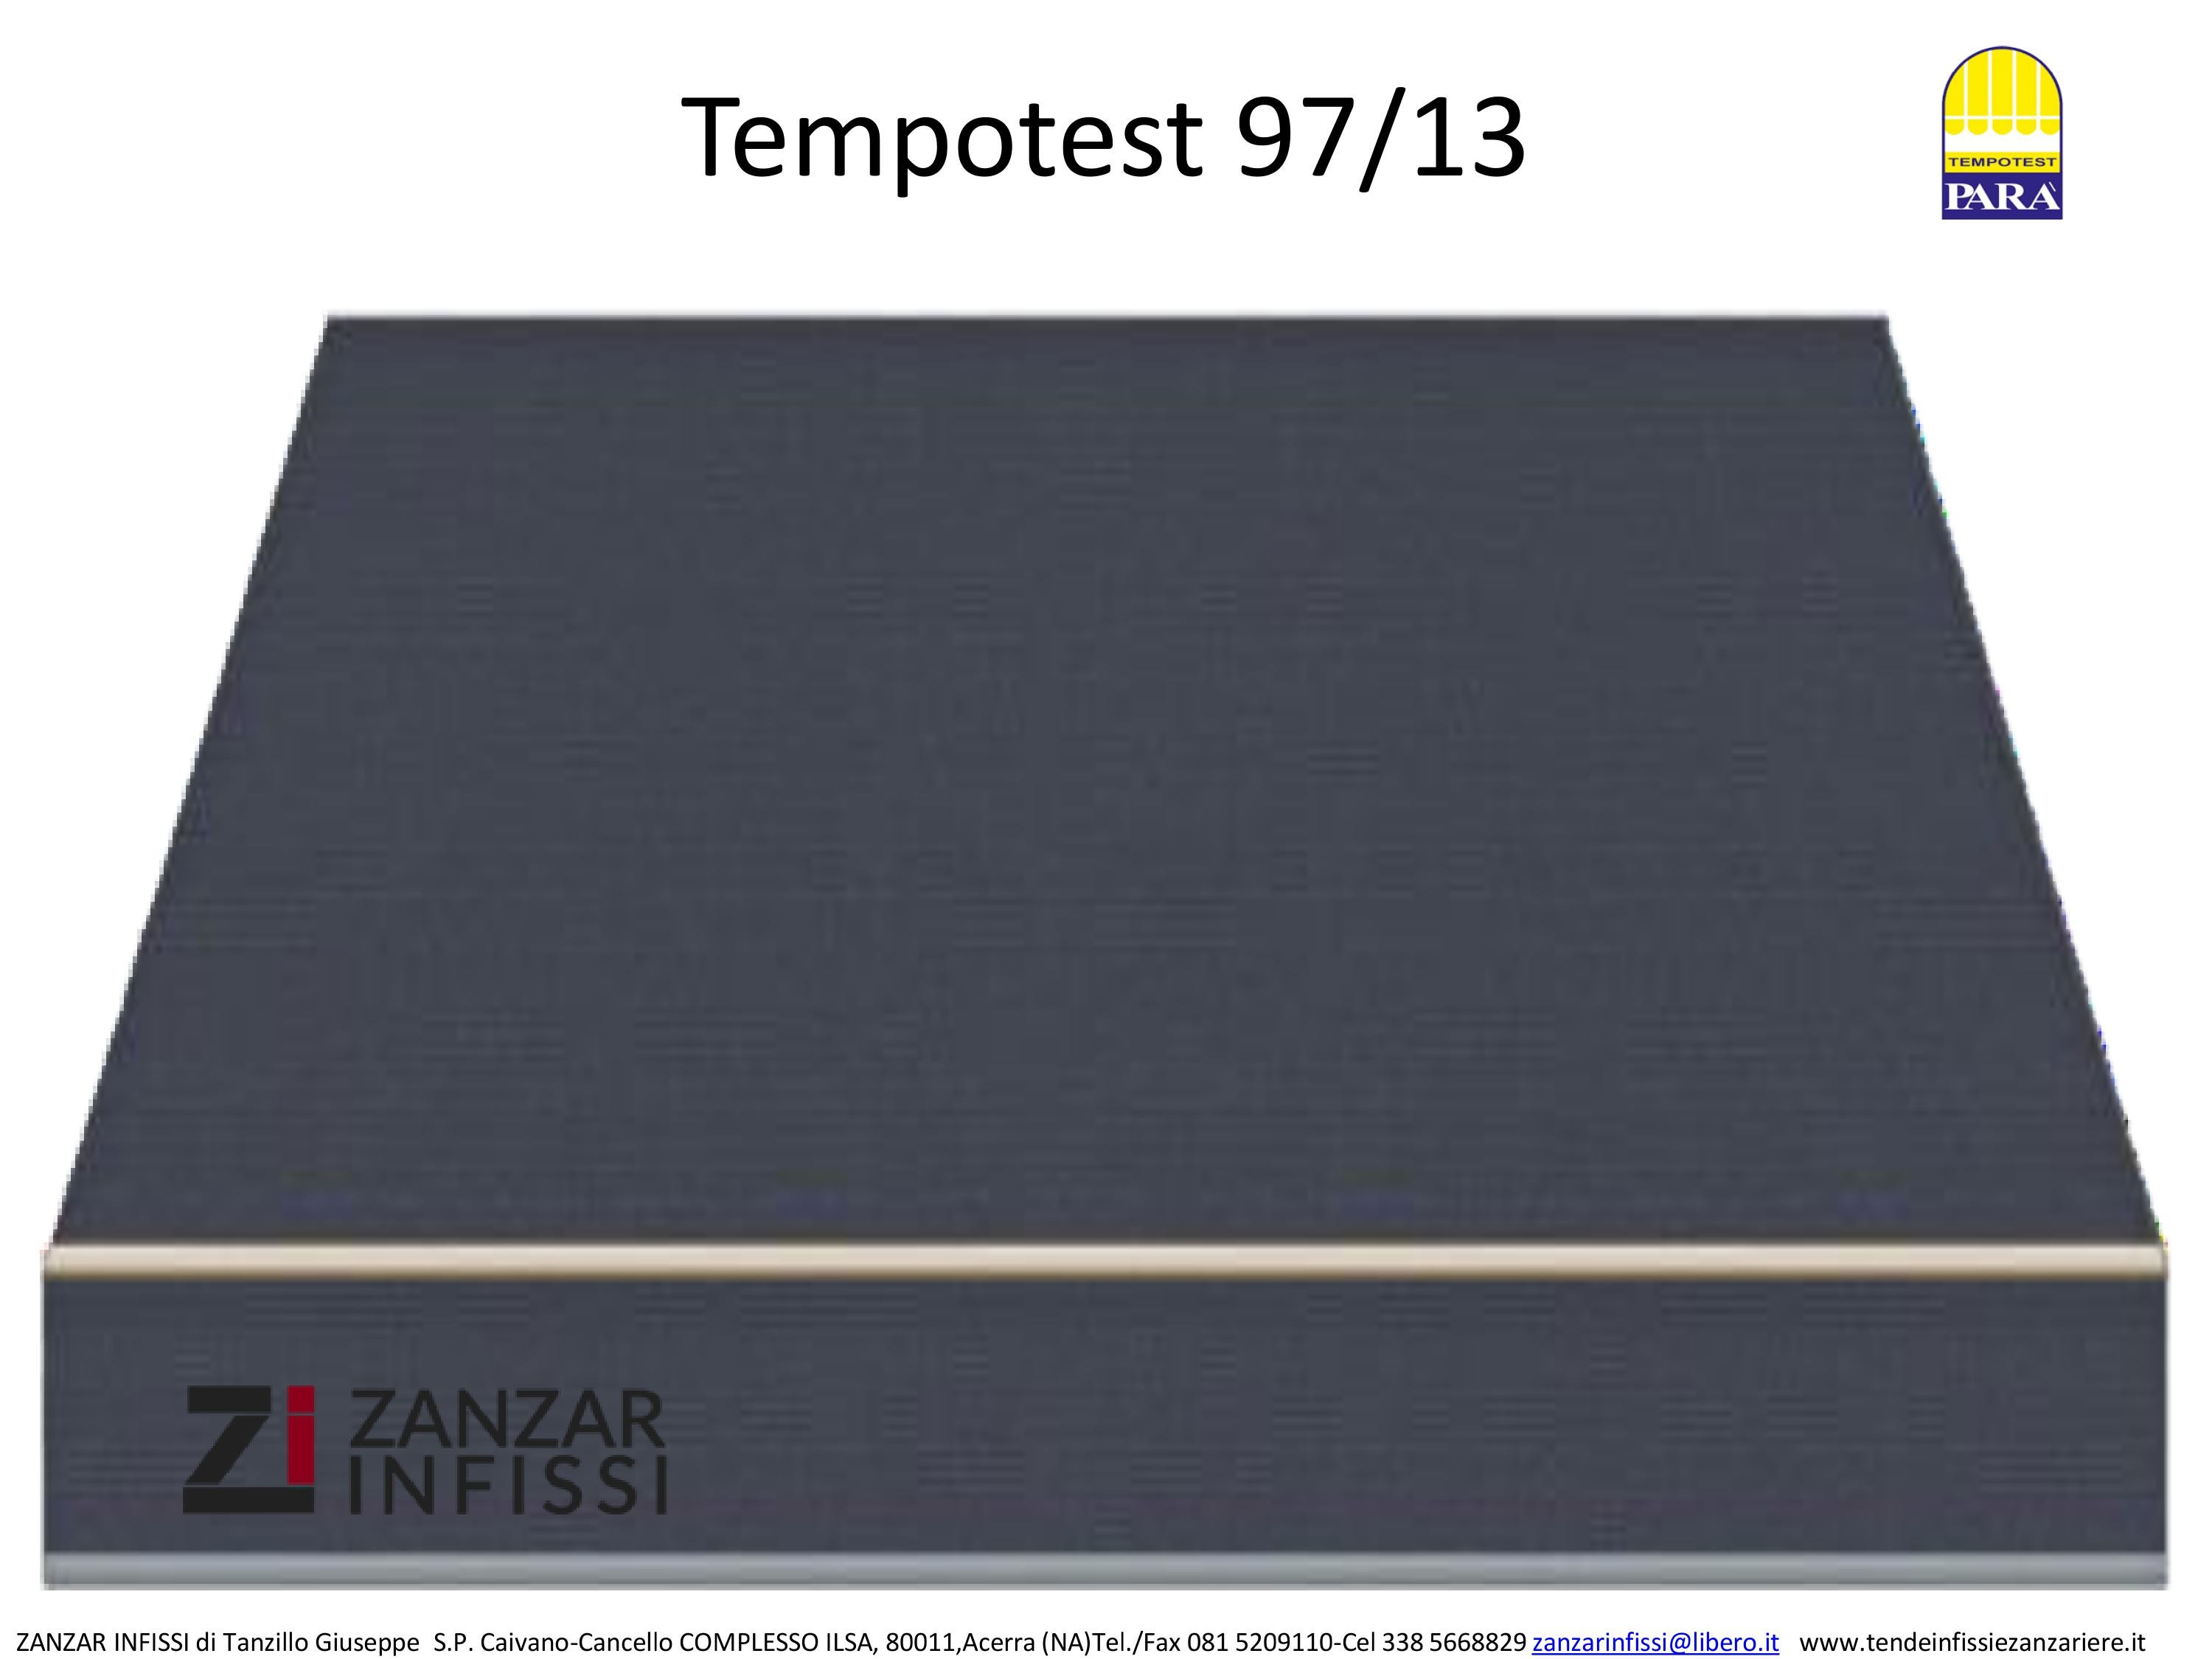 Tempotest 97/13